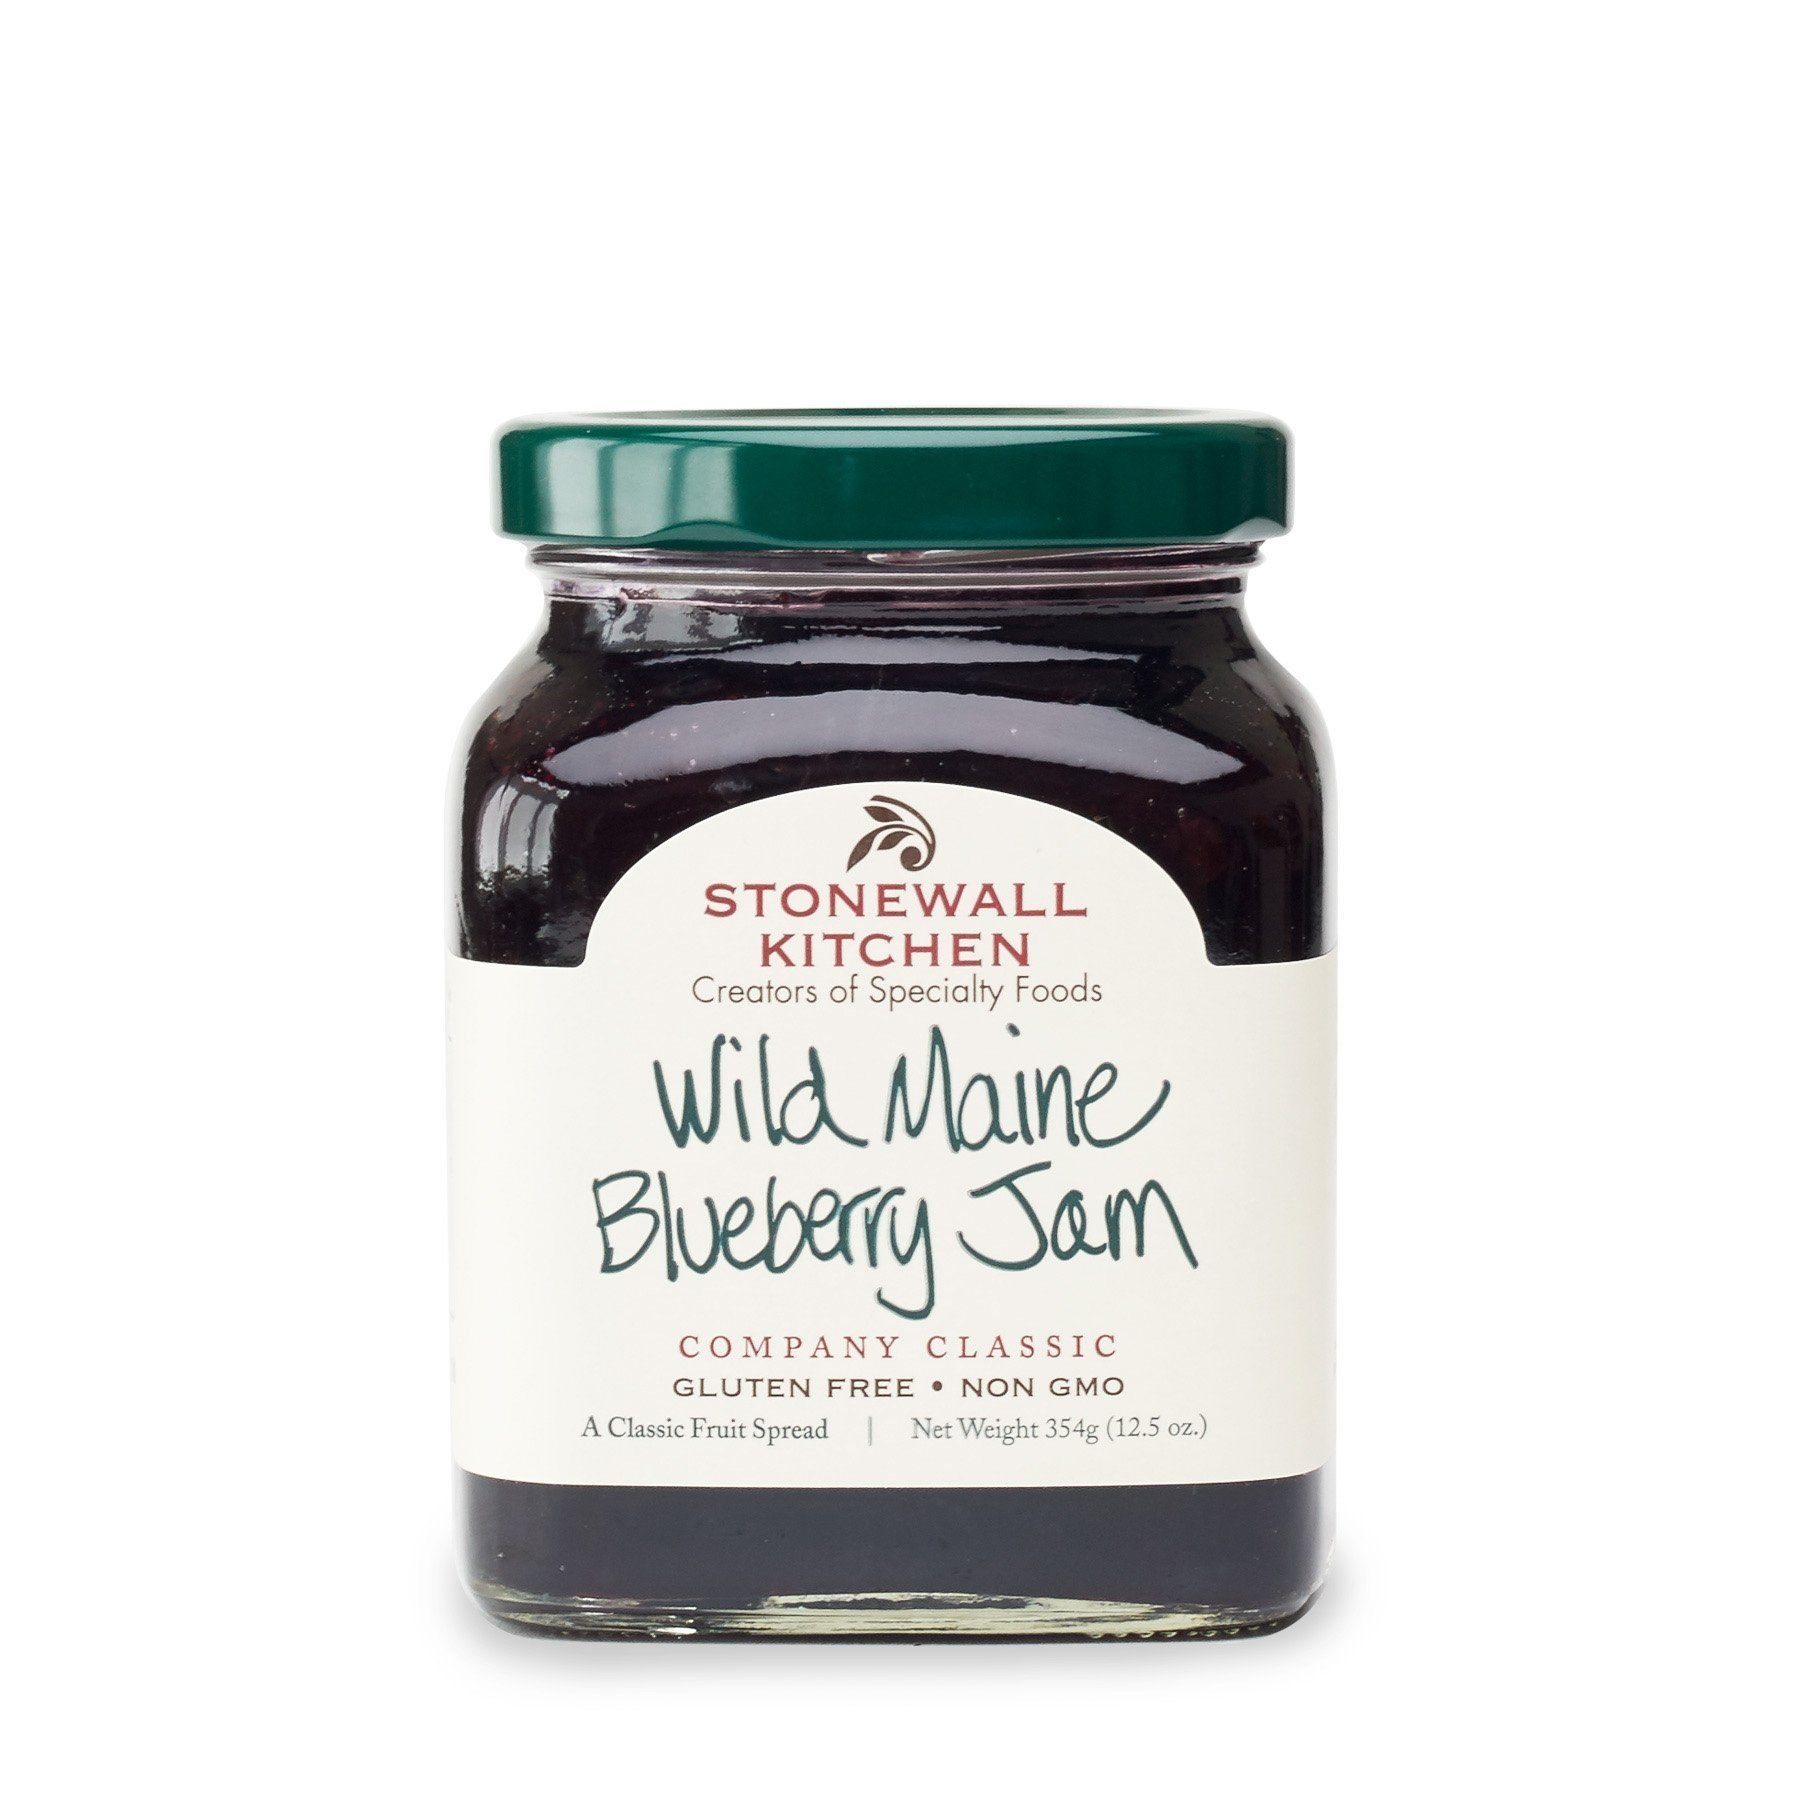 Stonewall Kitchen Jam Collections and Gift Sets - Multiple Flavors and Options (Wild Maine Blueberry, 1 Pack)